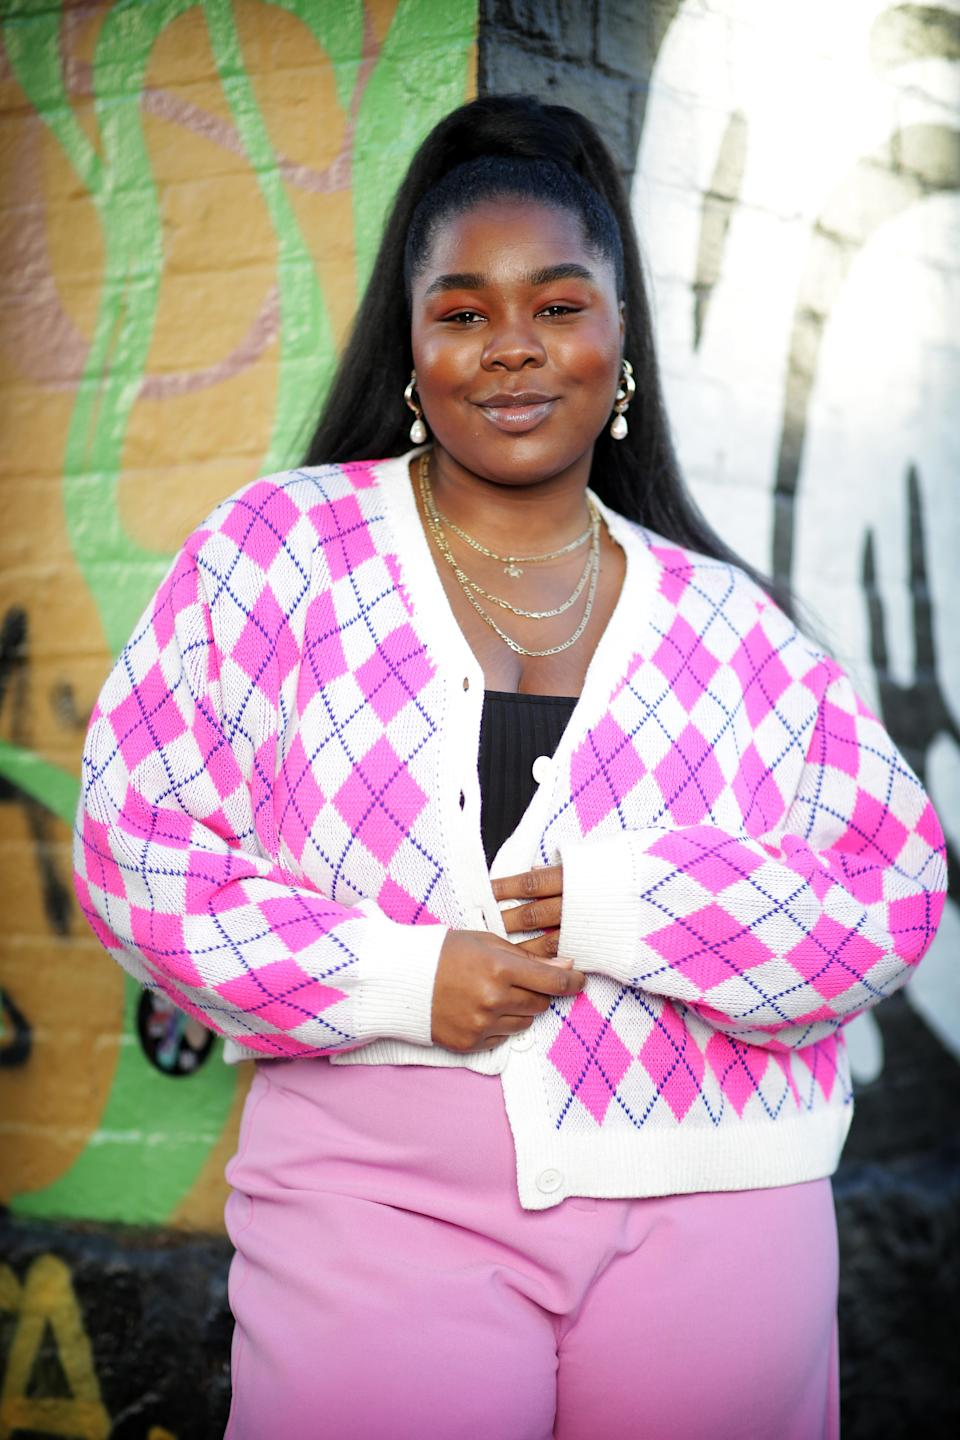 Lillian Ahenkan, also know as DJ Flex Mami poses during a photo shoot in Sydney, New South Wales